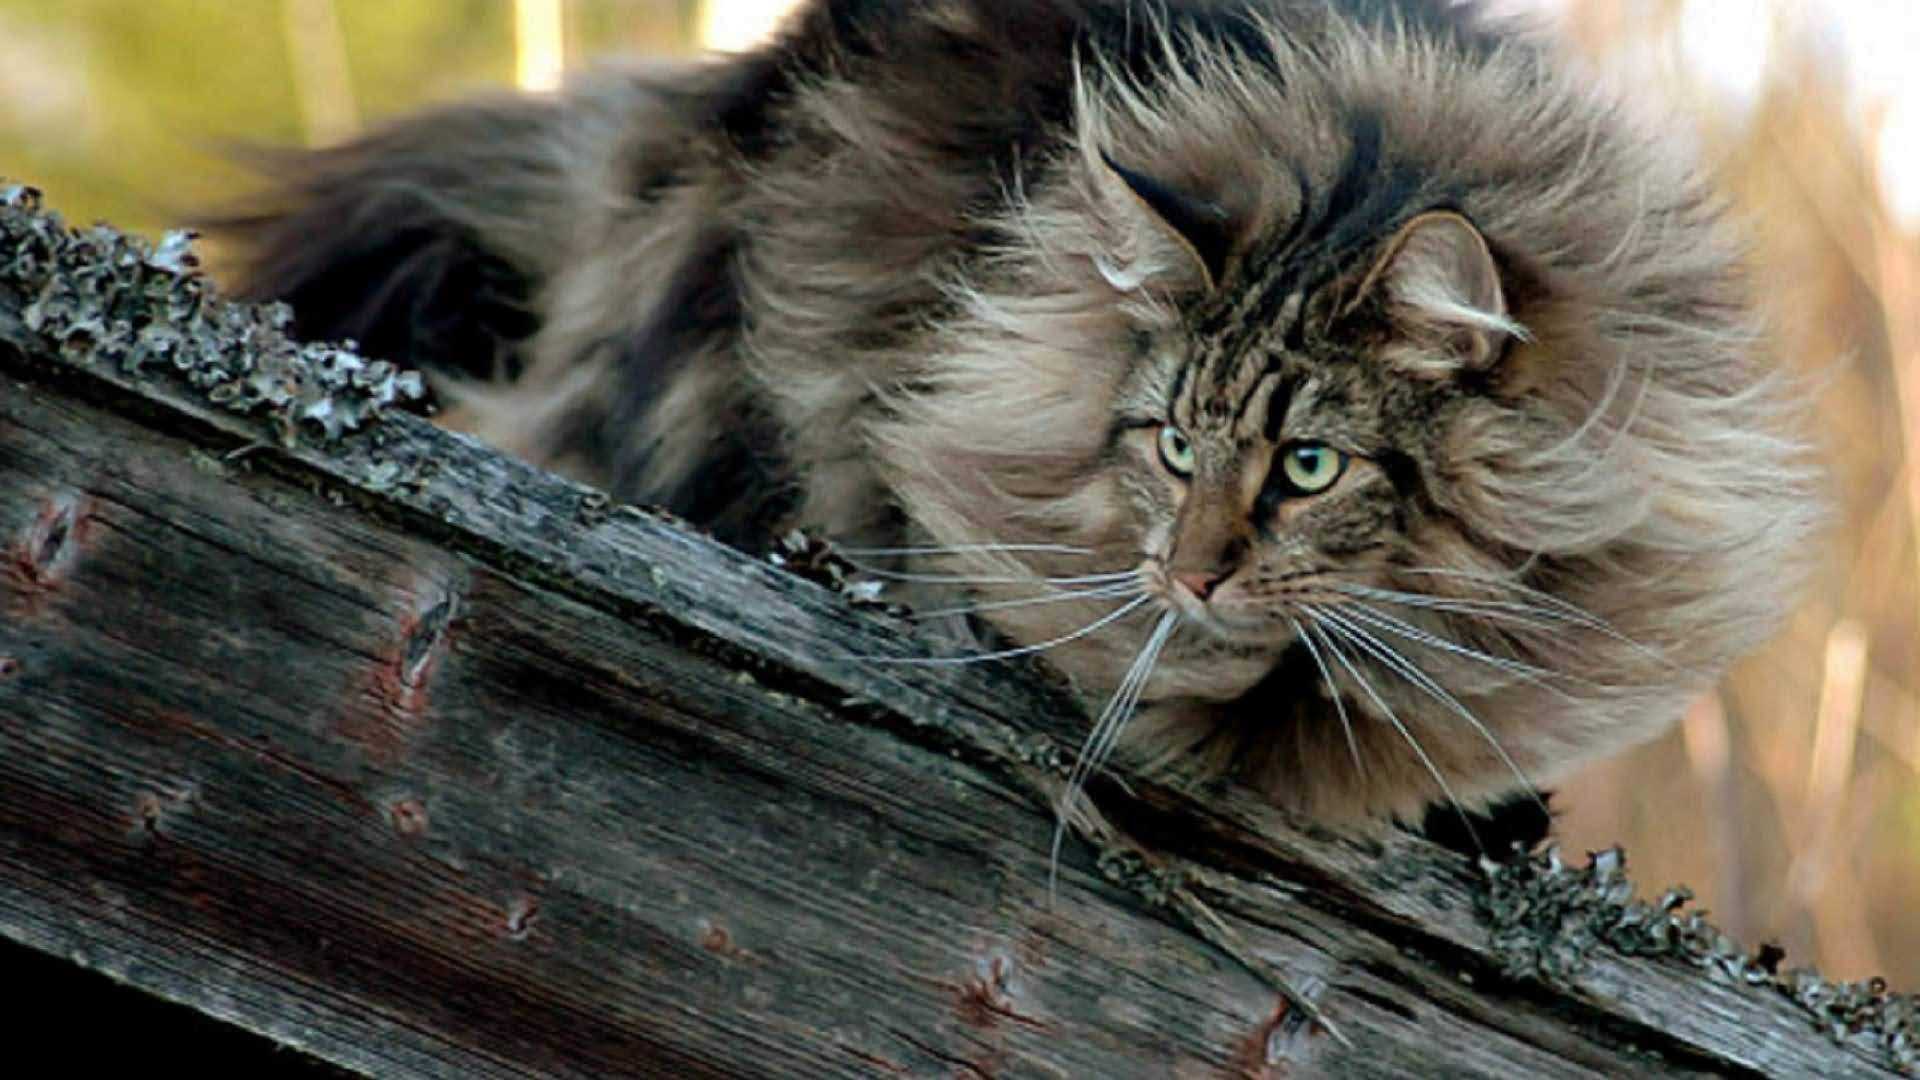 Long Hair Norwegian Forest Cat Norwegian Forest Cat Is A Breed Of Domestic Cat Originating In Northern Europe Thi Norwegian Forest Cat Cat Breeds Forest Cat